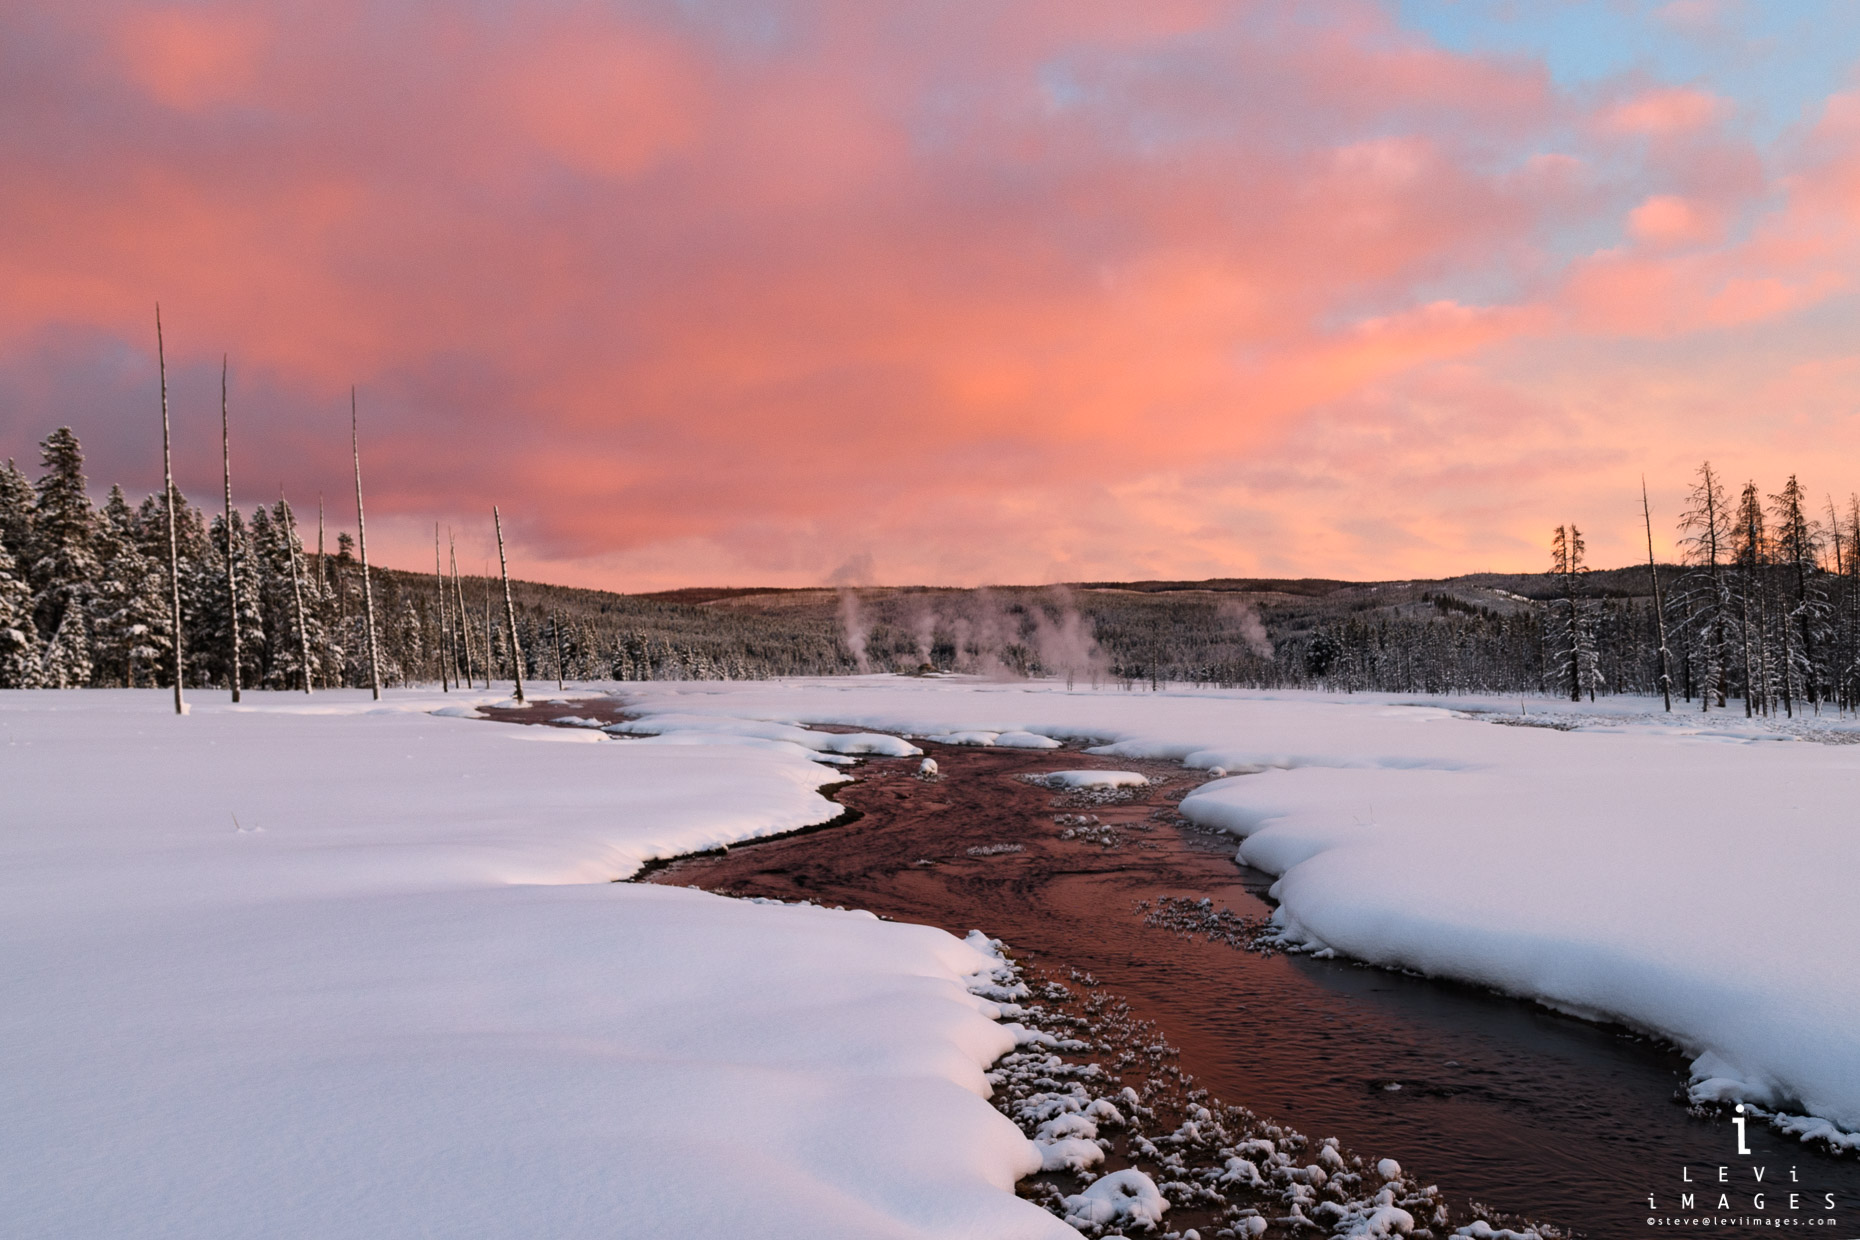 Sunset is reflected in stream with thermal features in the background. Yellowstone National Park, Wyoming